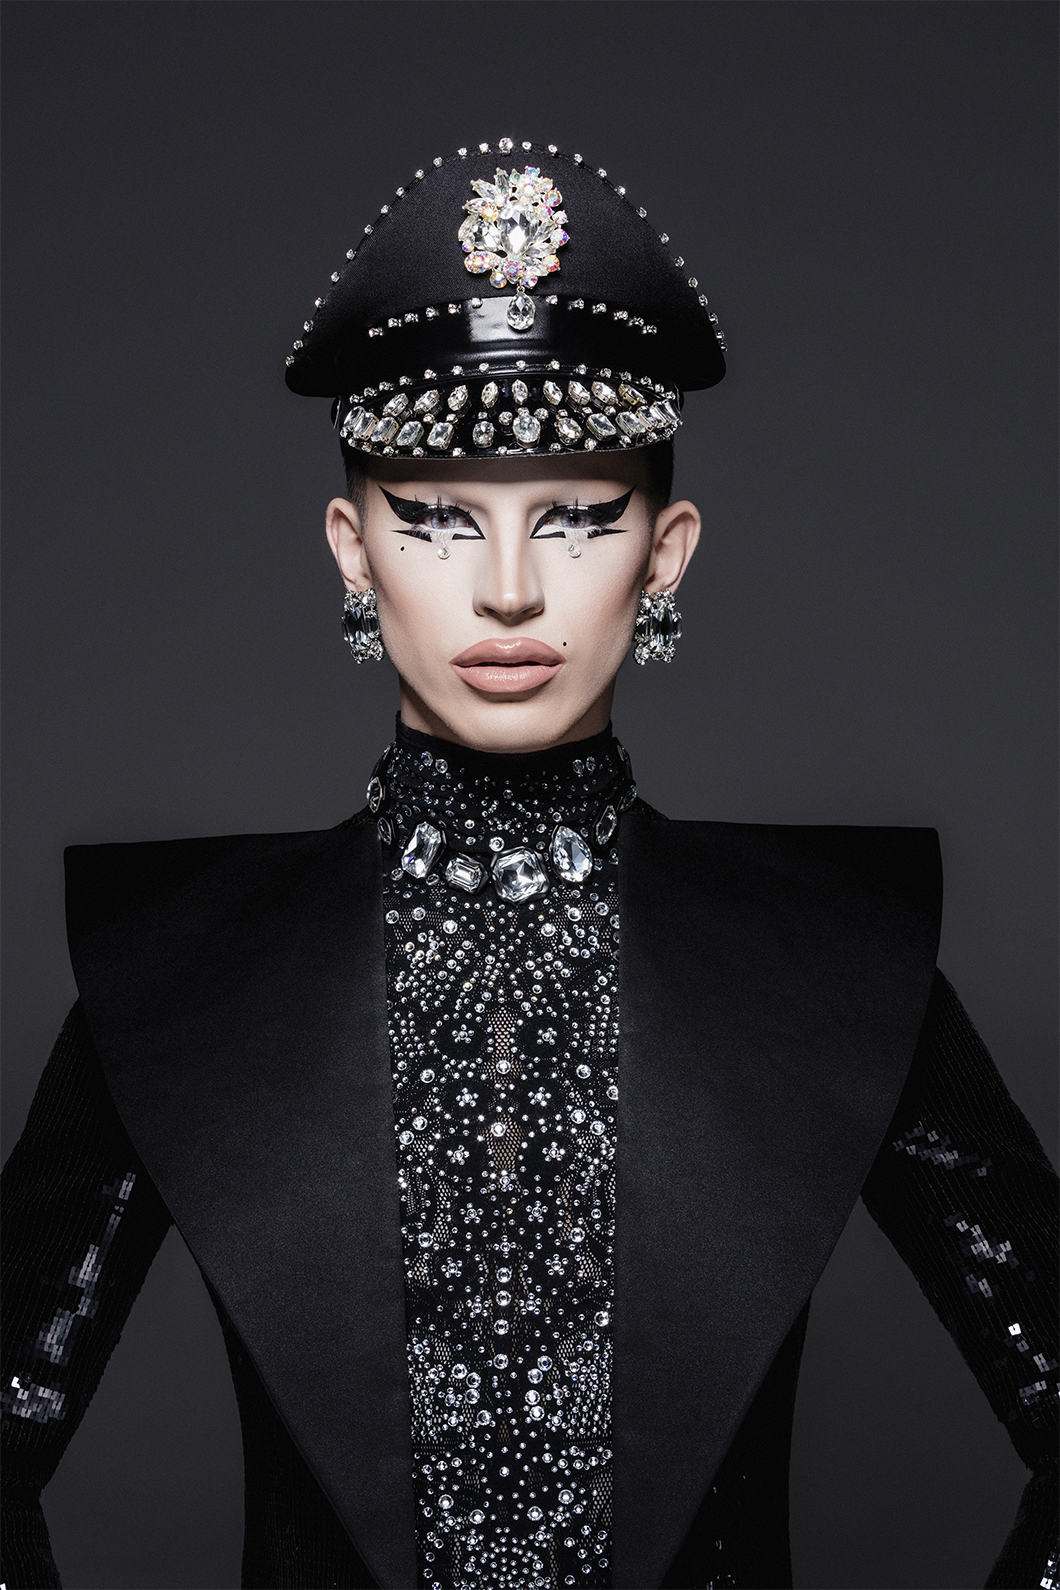 aquaria on new projects snatching the crown his fave nyc queen